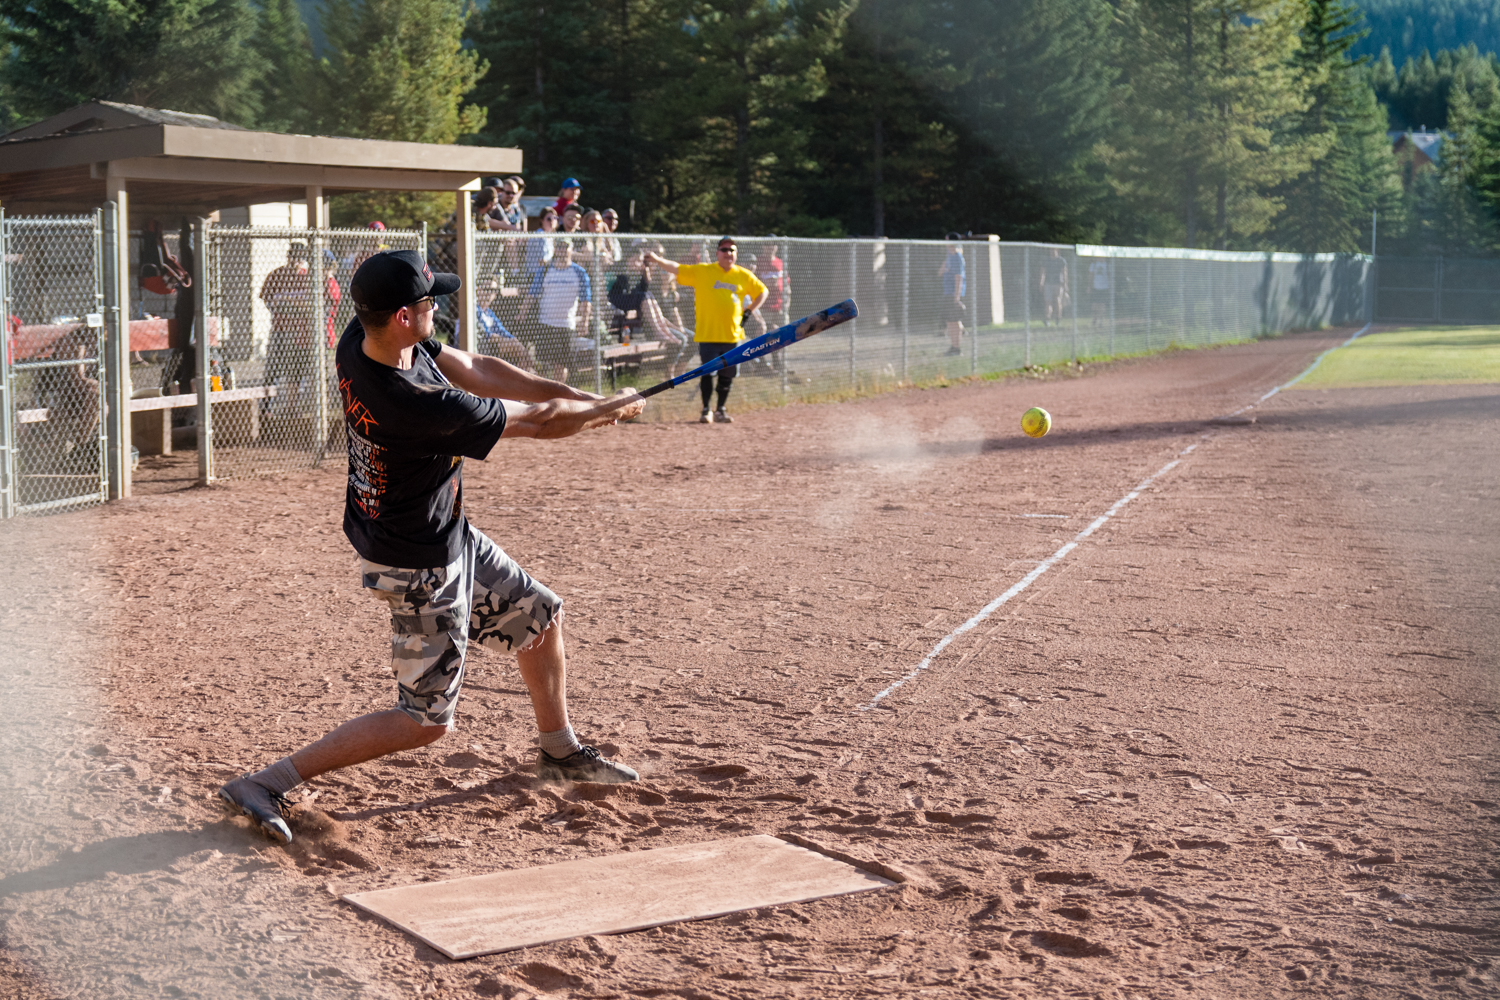 2017 08 22 Softball Playoffs 1-261.jpg